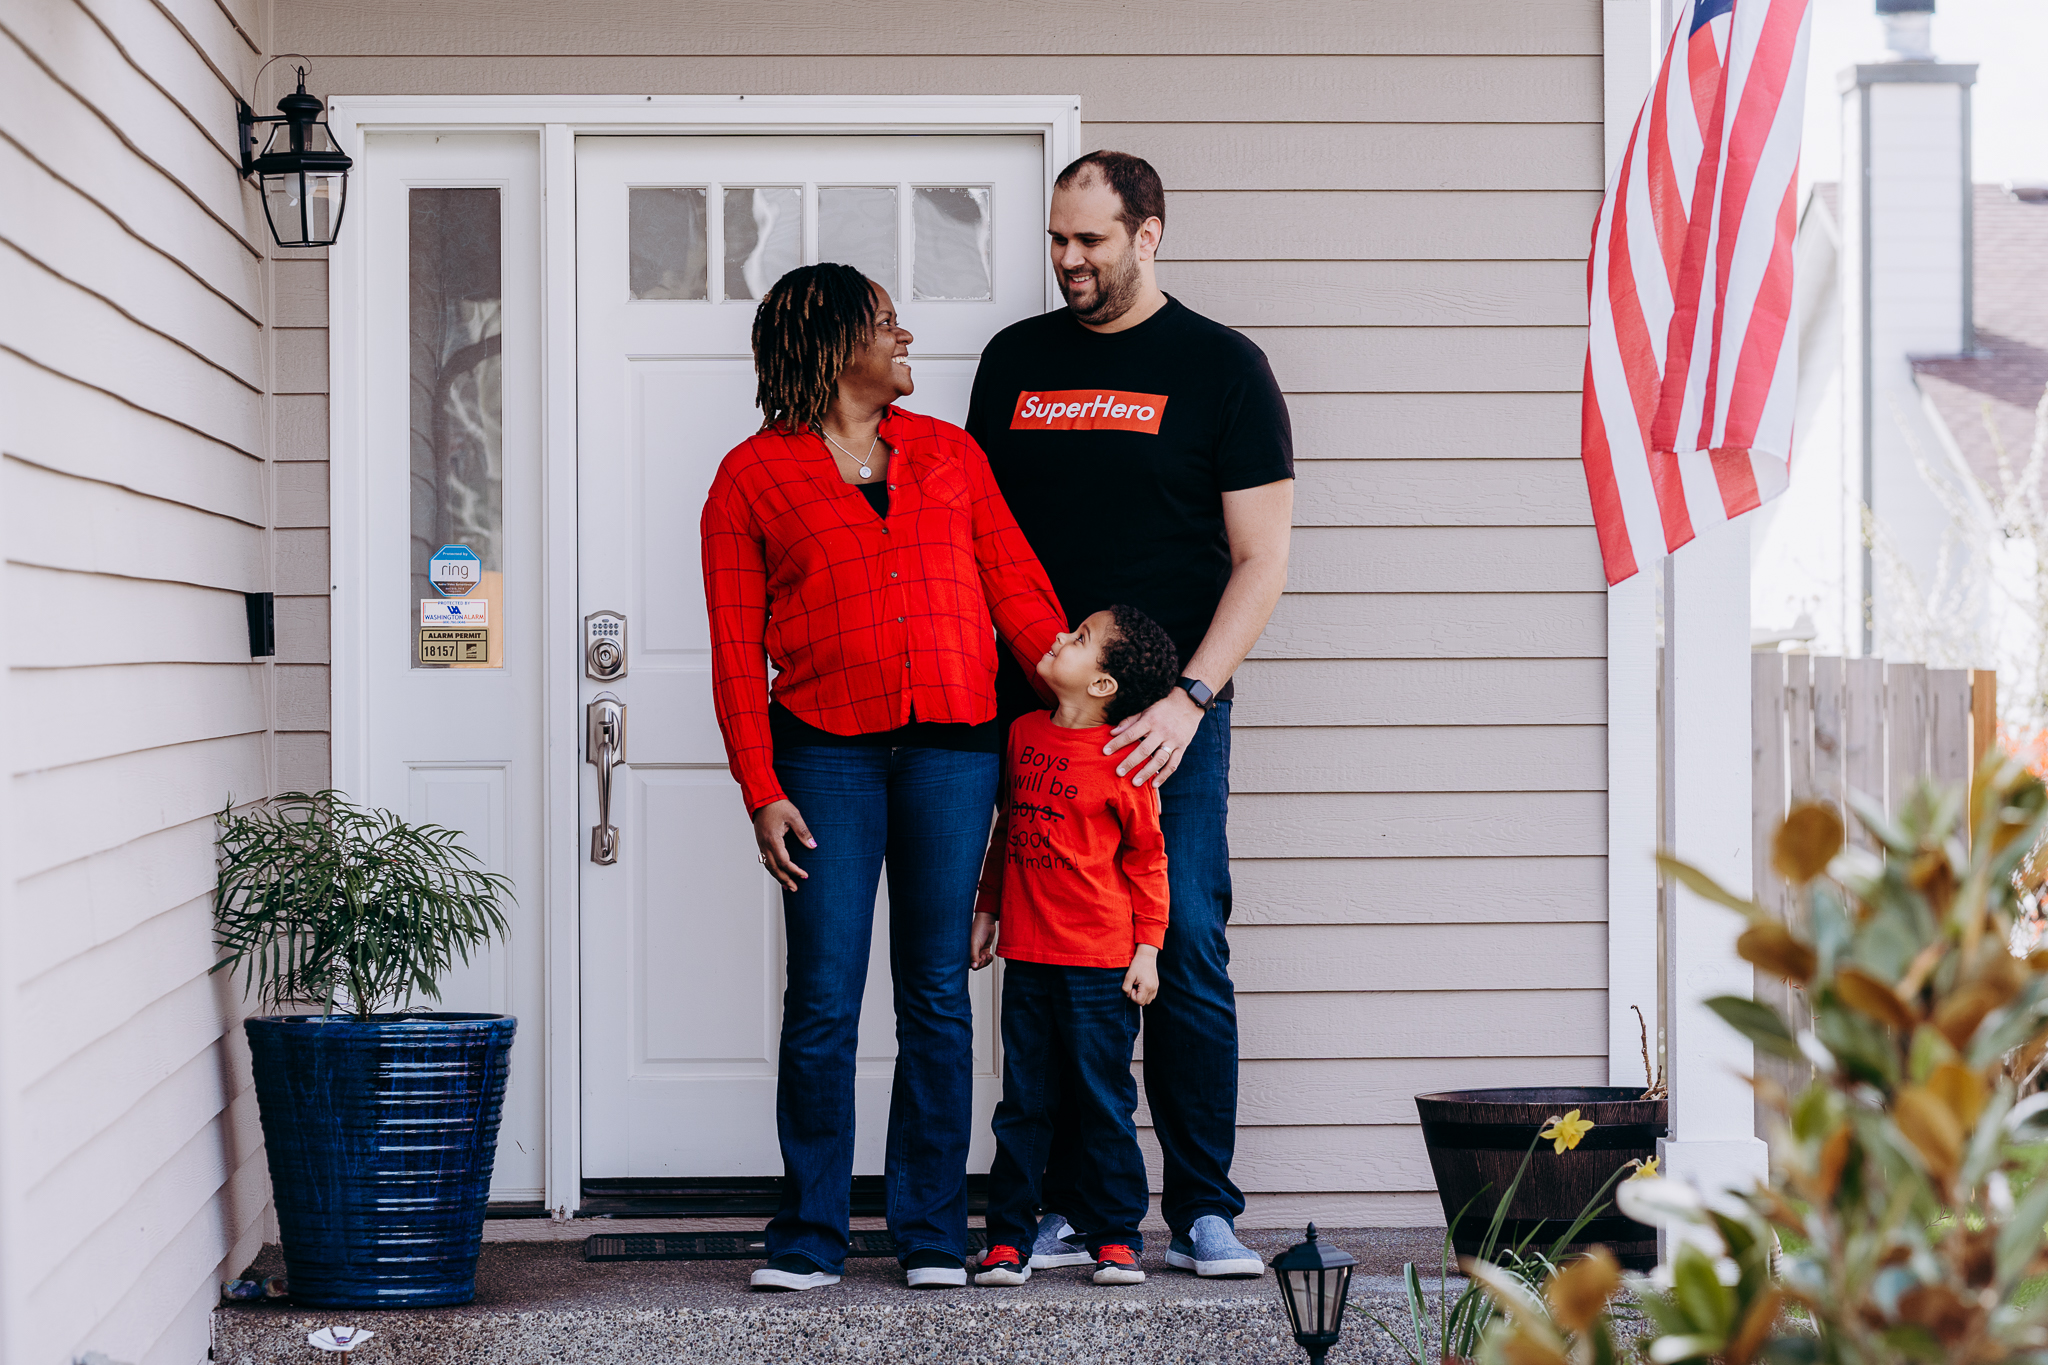 Through the Front Steps Project, Senad Tiric  of Tacoma is snapping and sharing photos of folks in front of their homes, with goals of connecting them - and raising money for charity. (Photo: Sky Orca Photography)